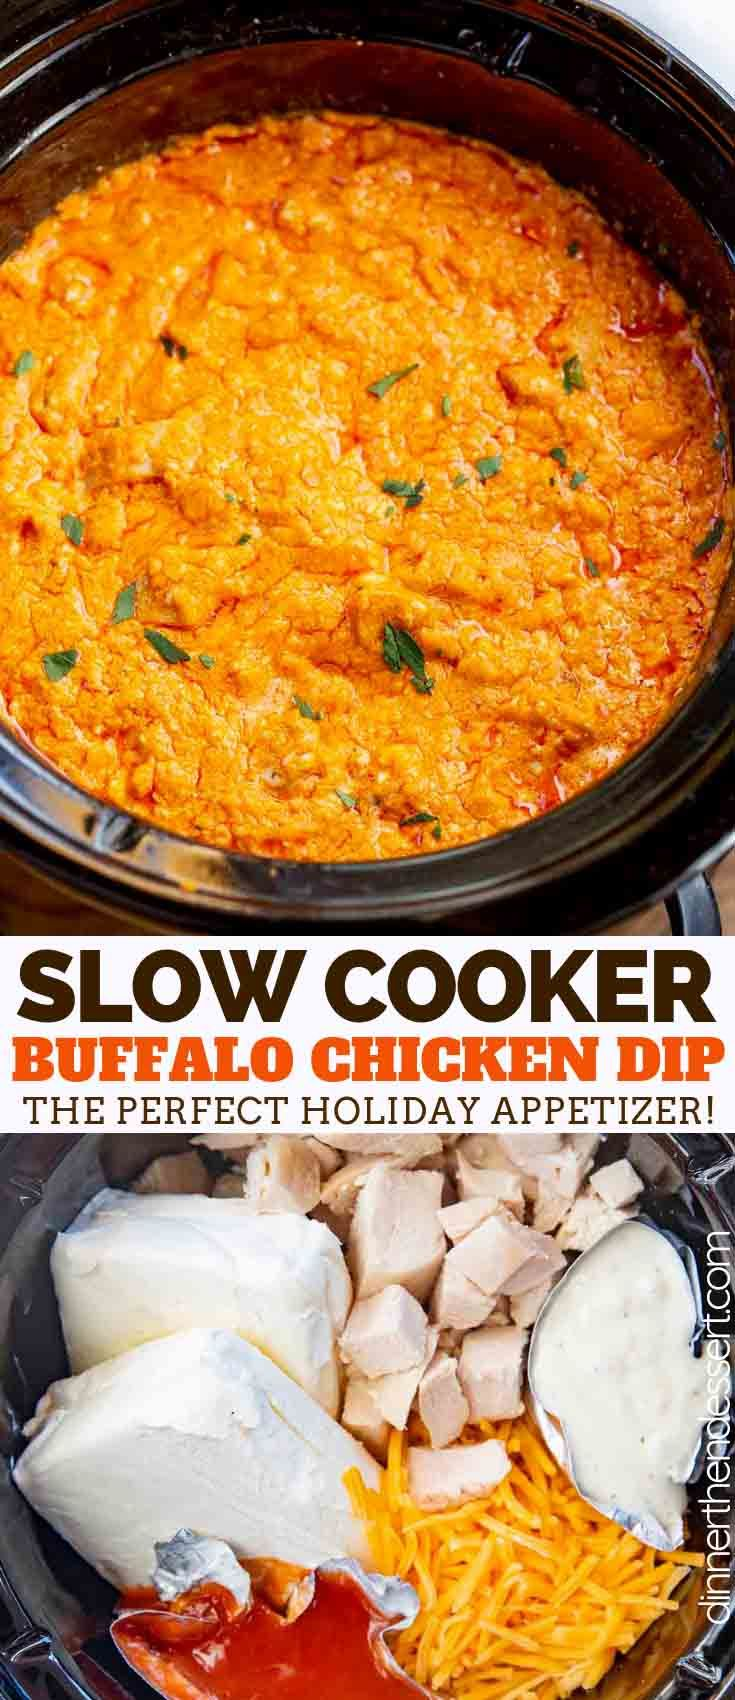 Slow Cooker Buffalo Chicken Dip - Dinner, then Dessert